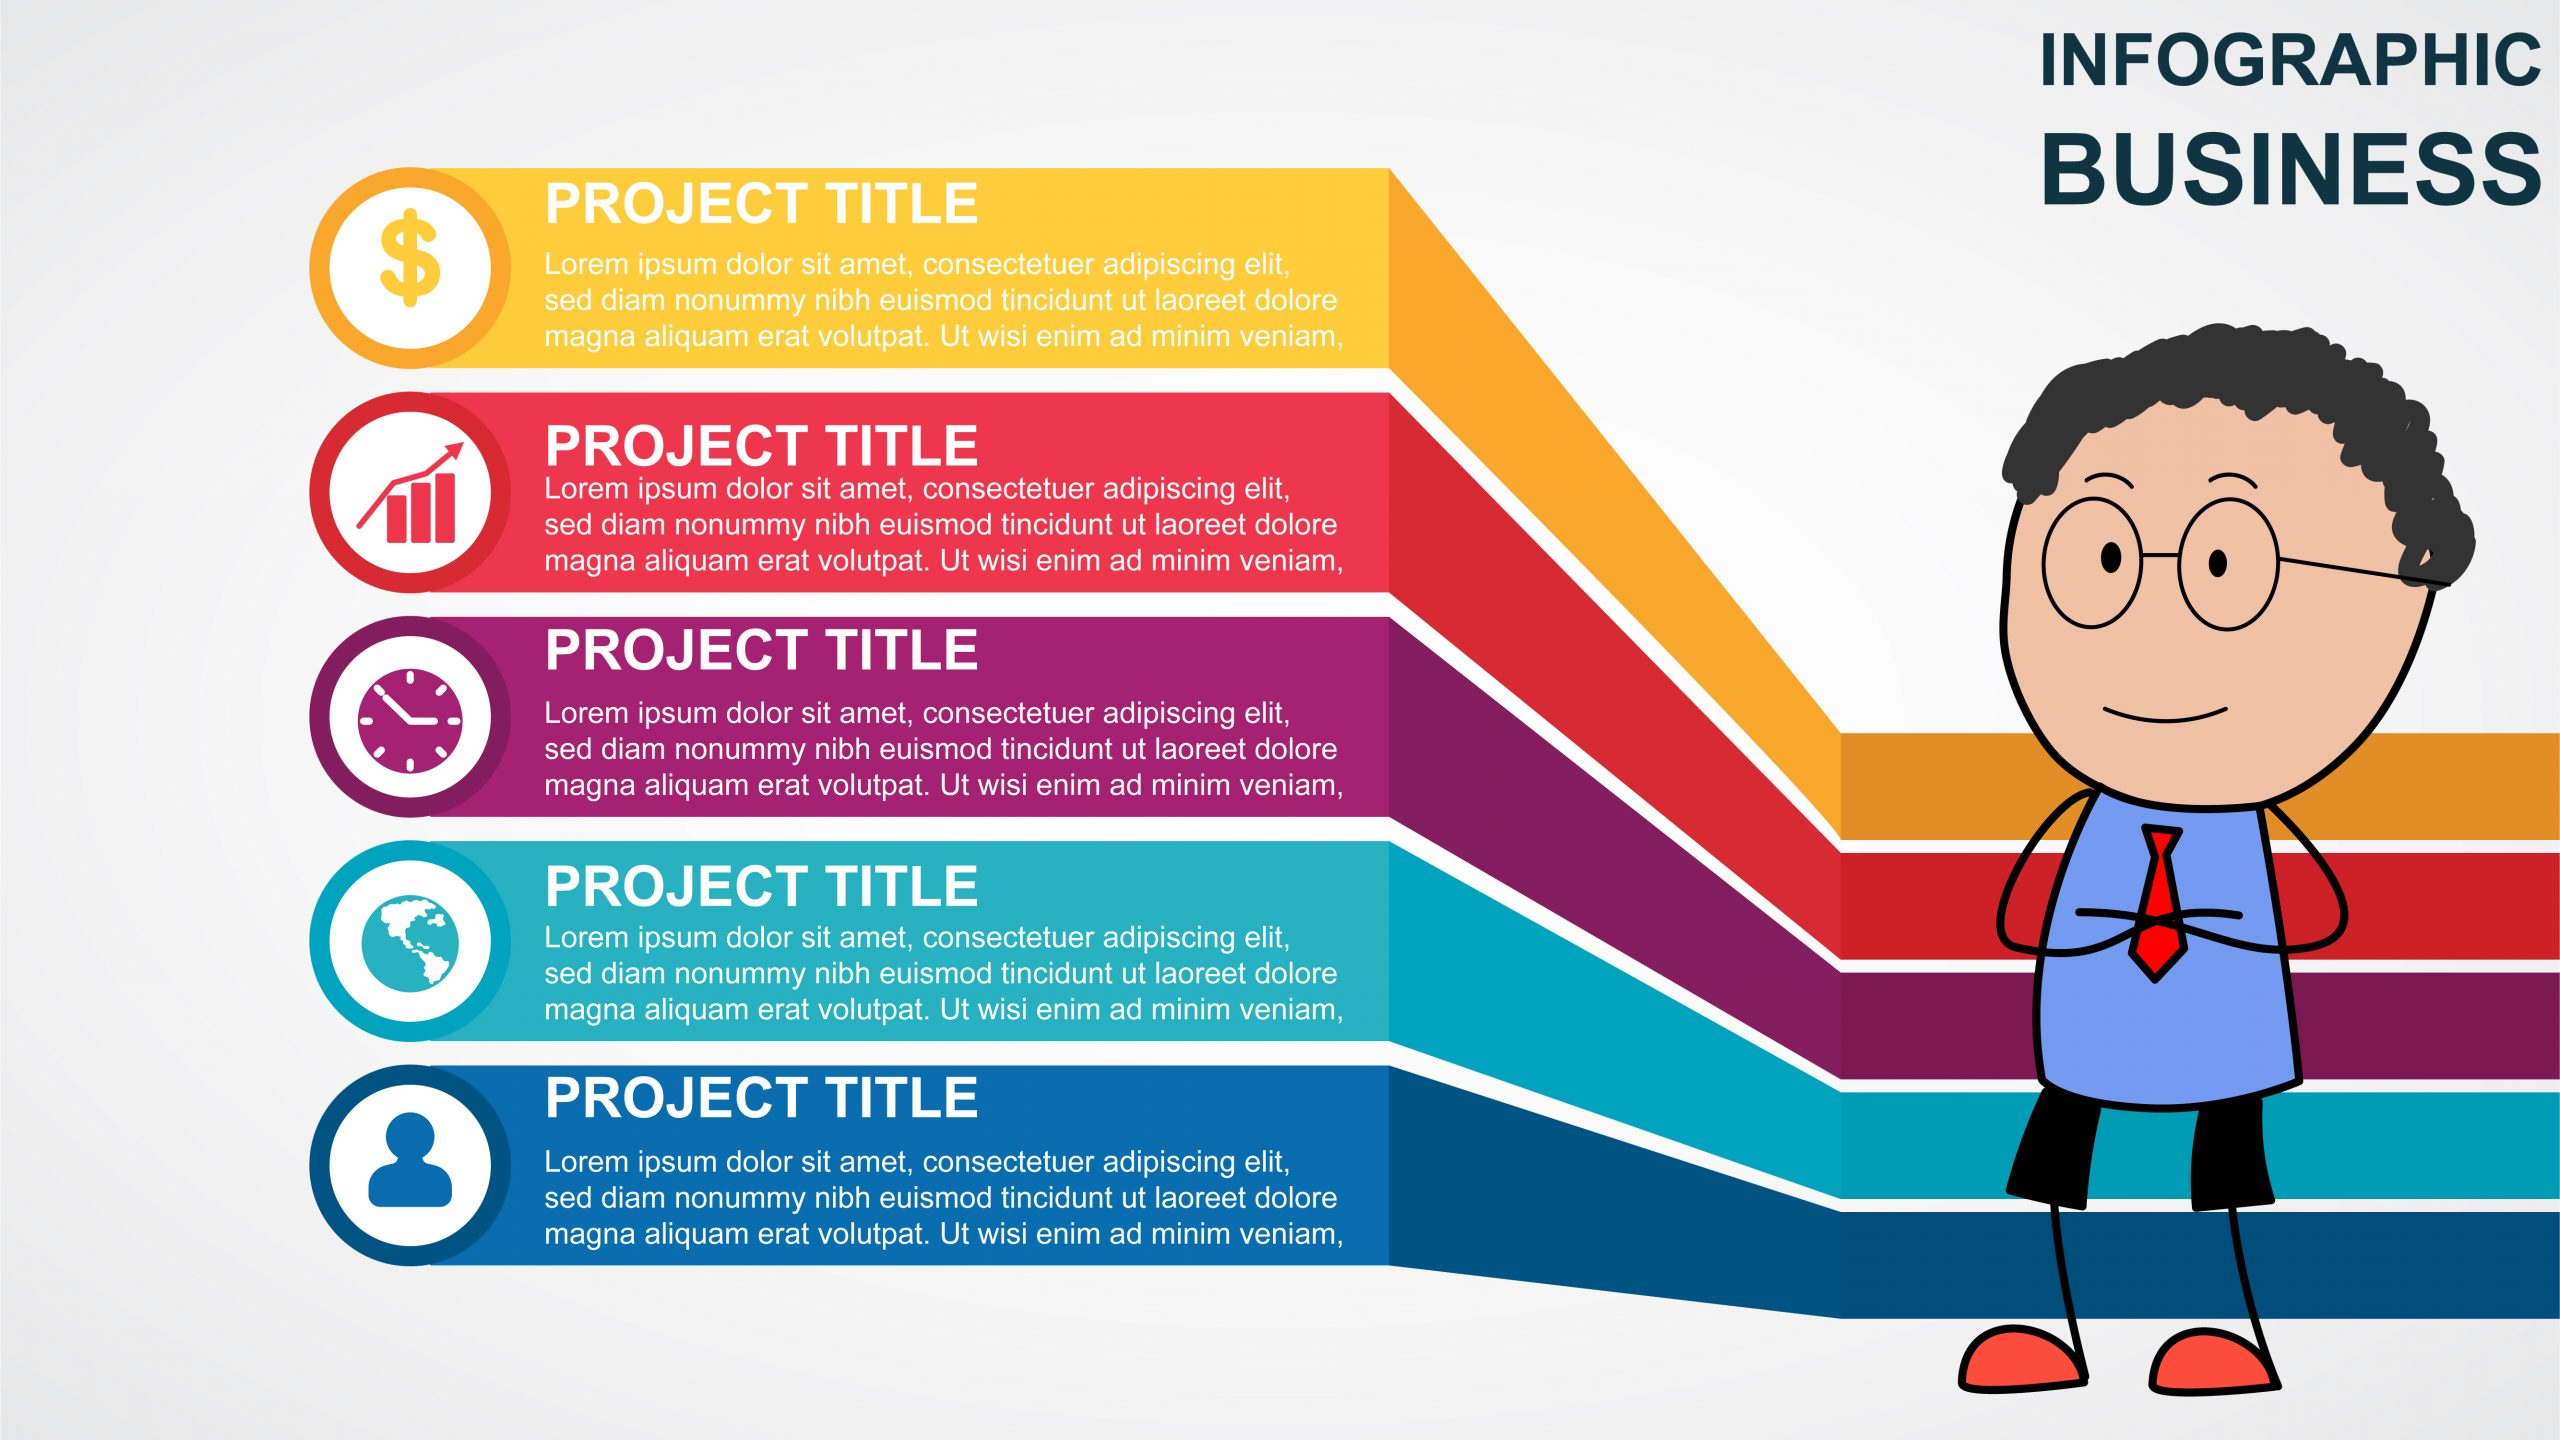 9 Types Of Infographic Templates To Make Effective Presentations